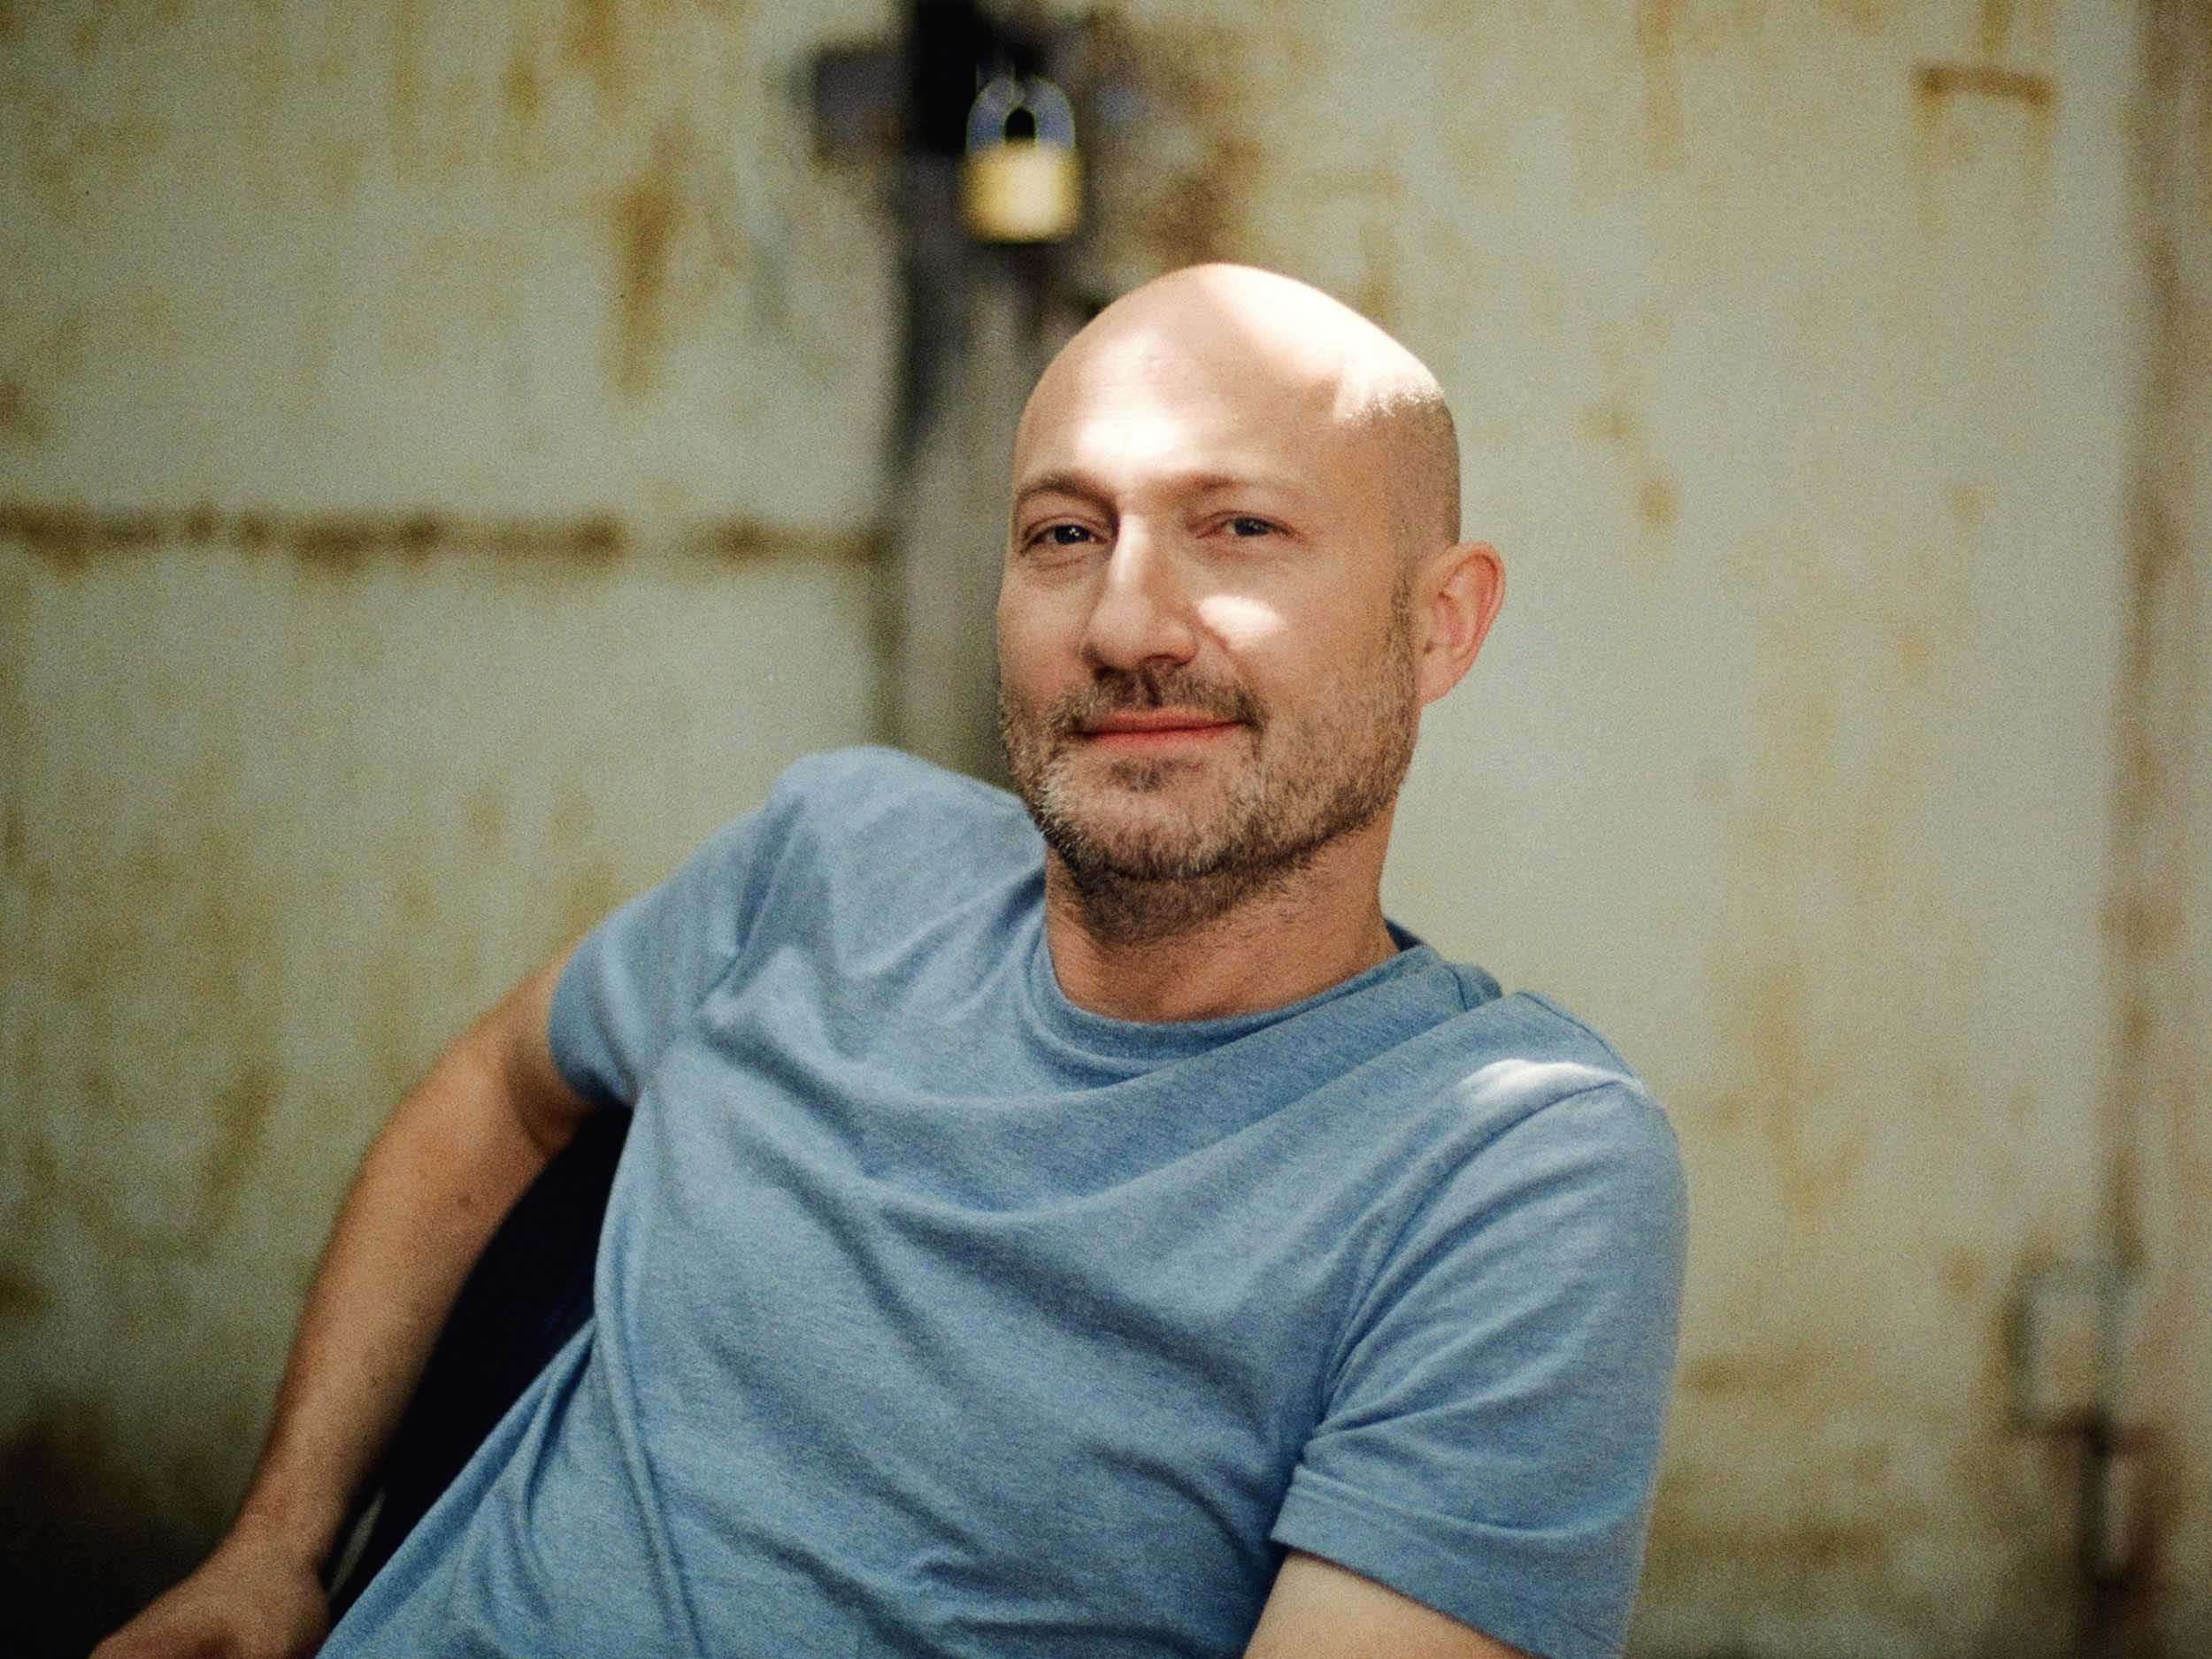 Paul Kalkbrenner shares a buoyant techno mix from the summer that never happened